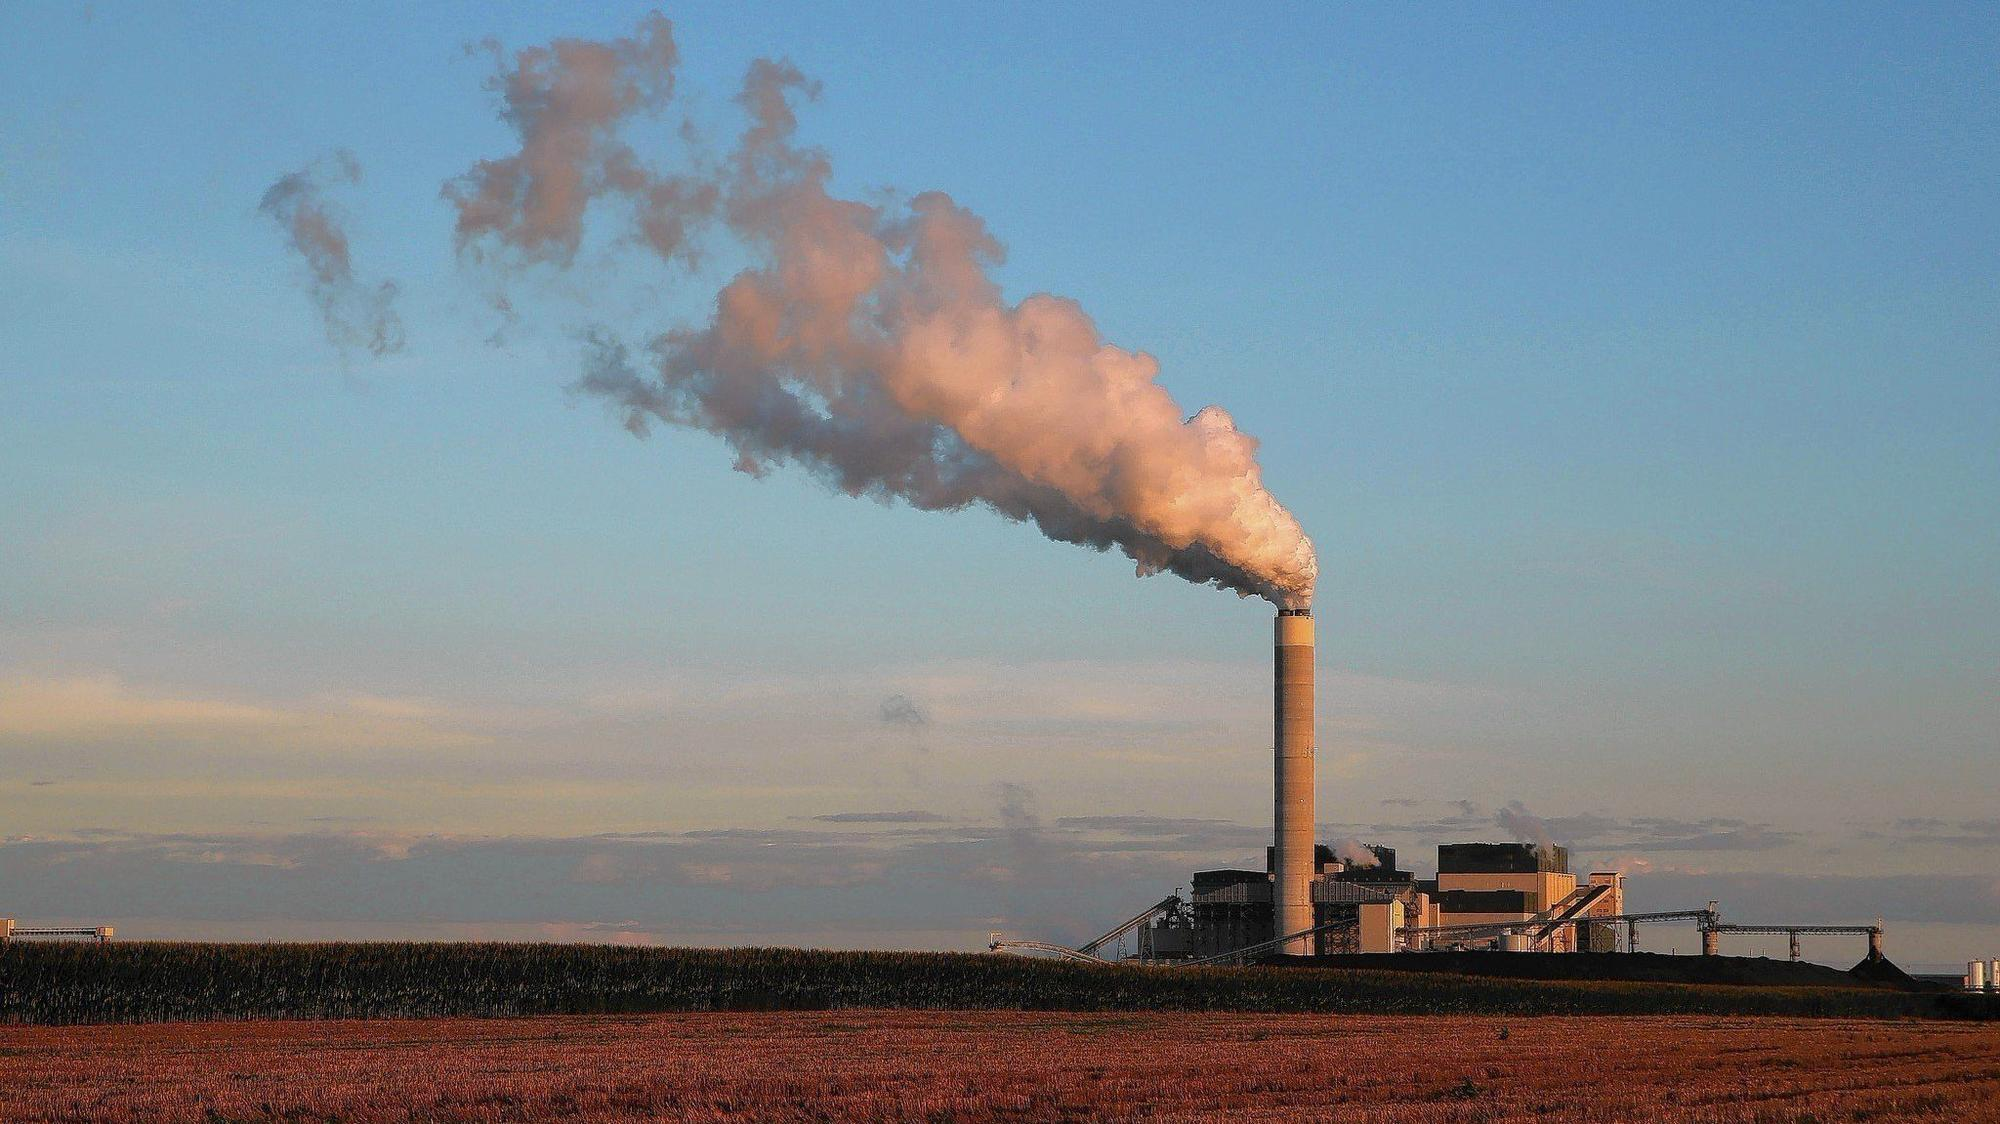 Lawsuit seeks to force Illinois to adopt ethics rules for environmental regulators